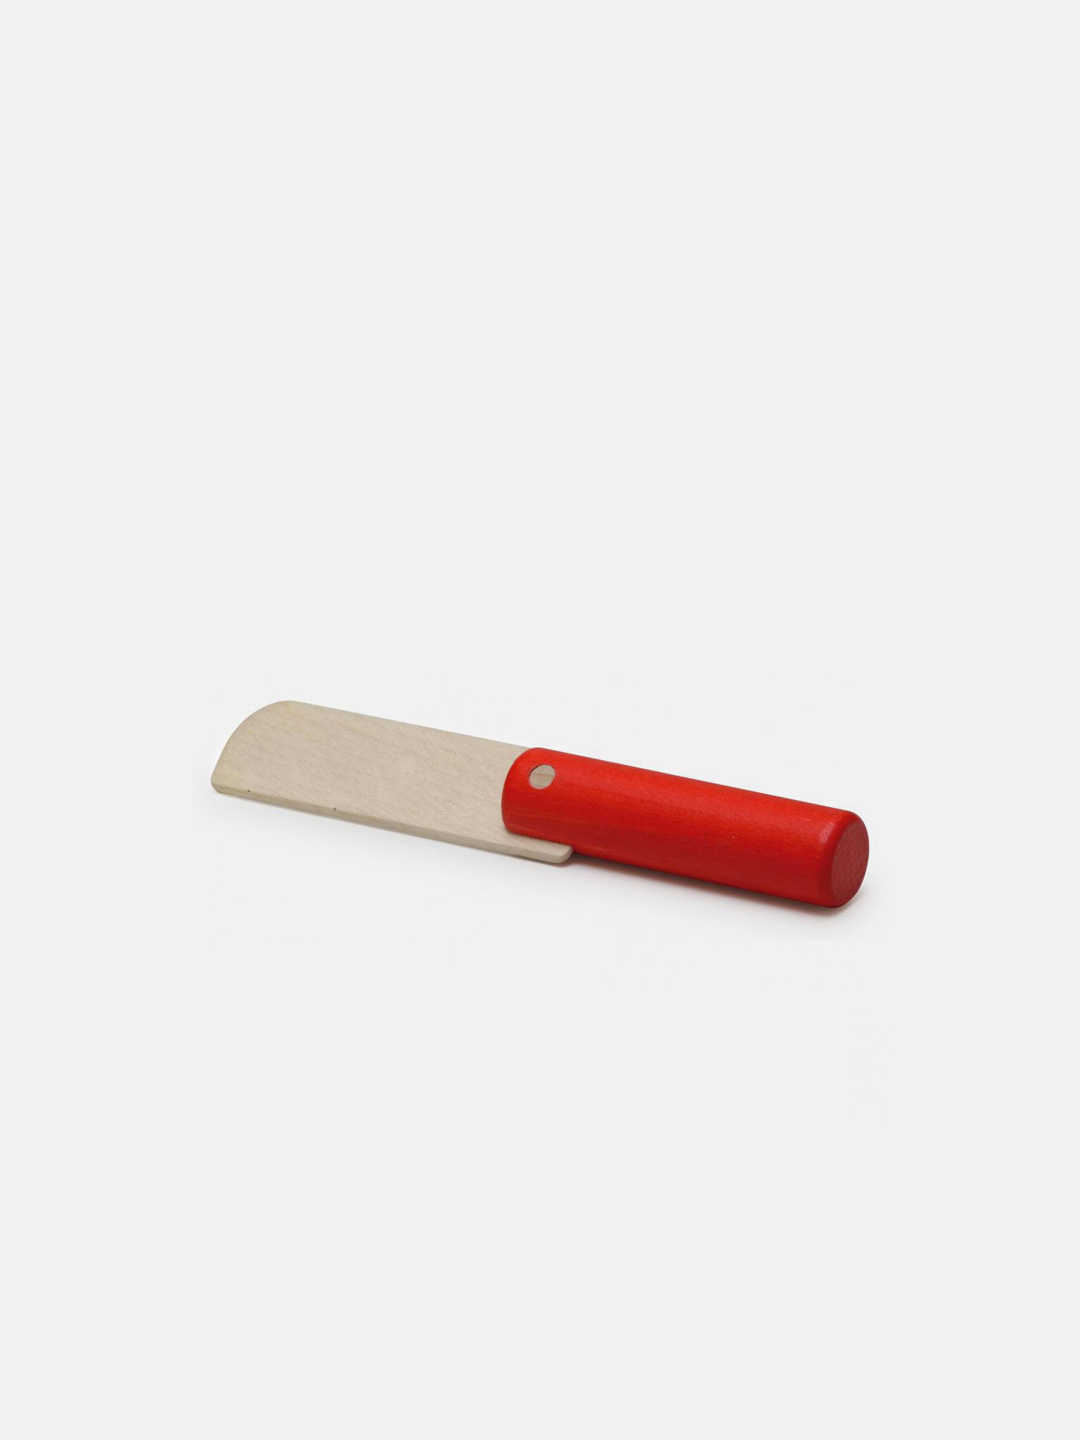 Play Kitchen Wooden Cutting Knife